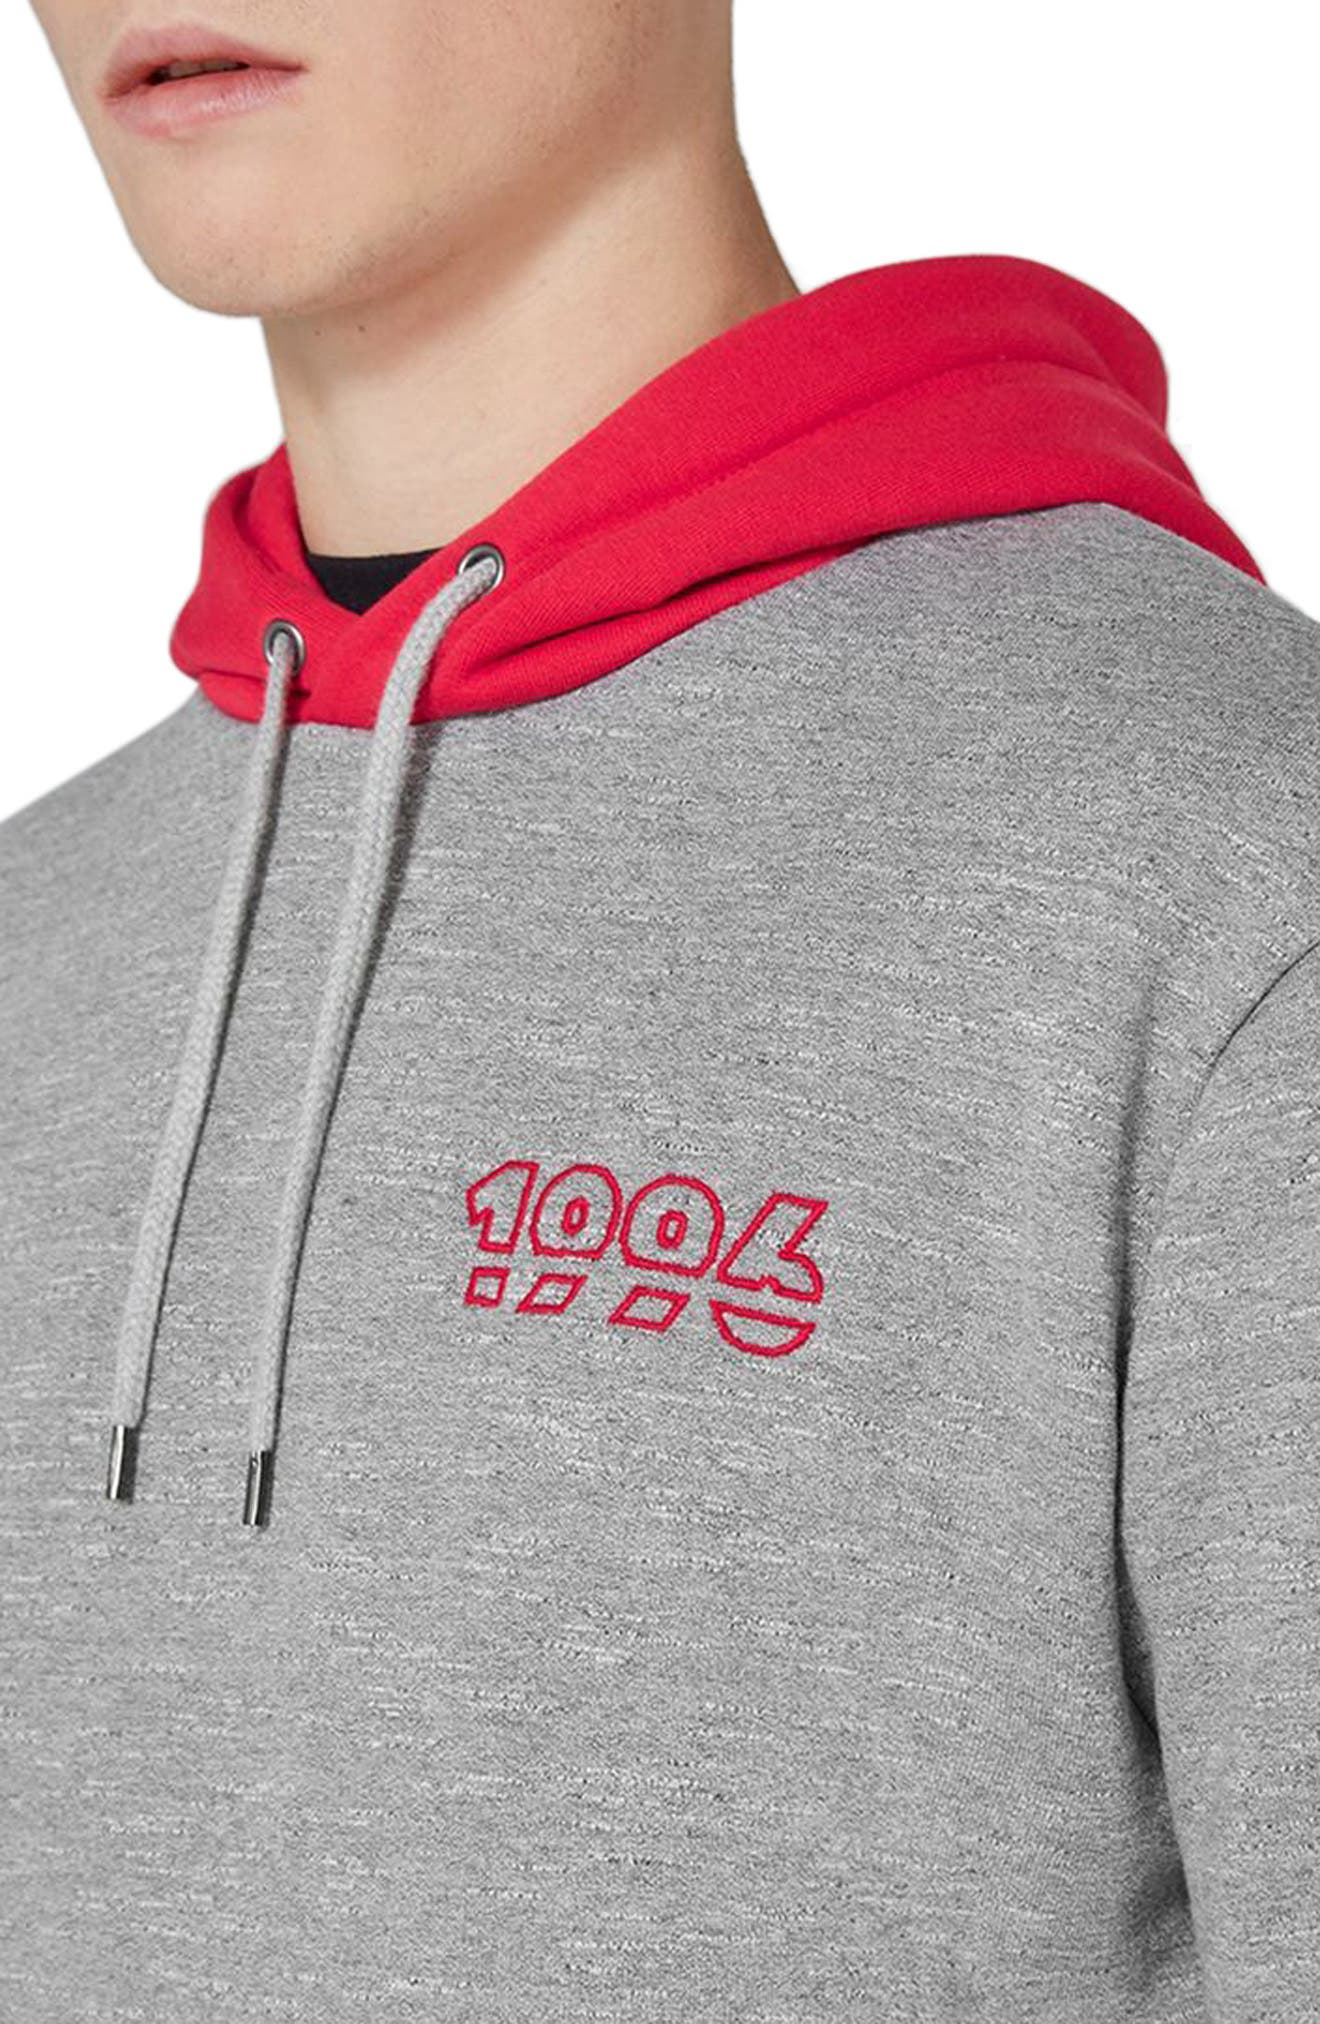 1996 Contrast Hoodie,                             Alternate thumbnail 3, color,                             020